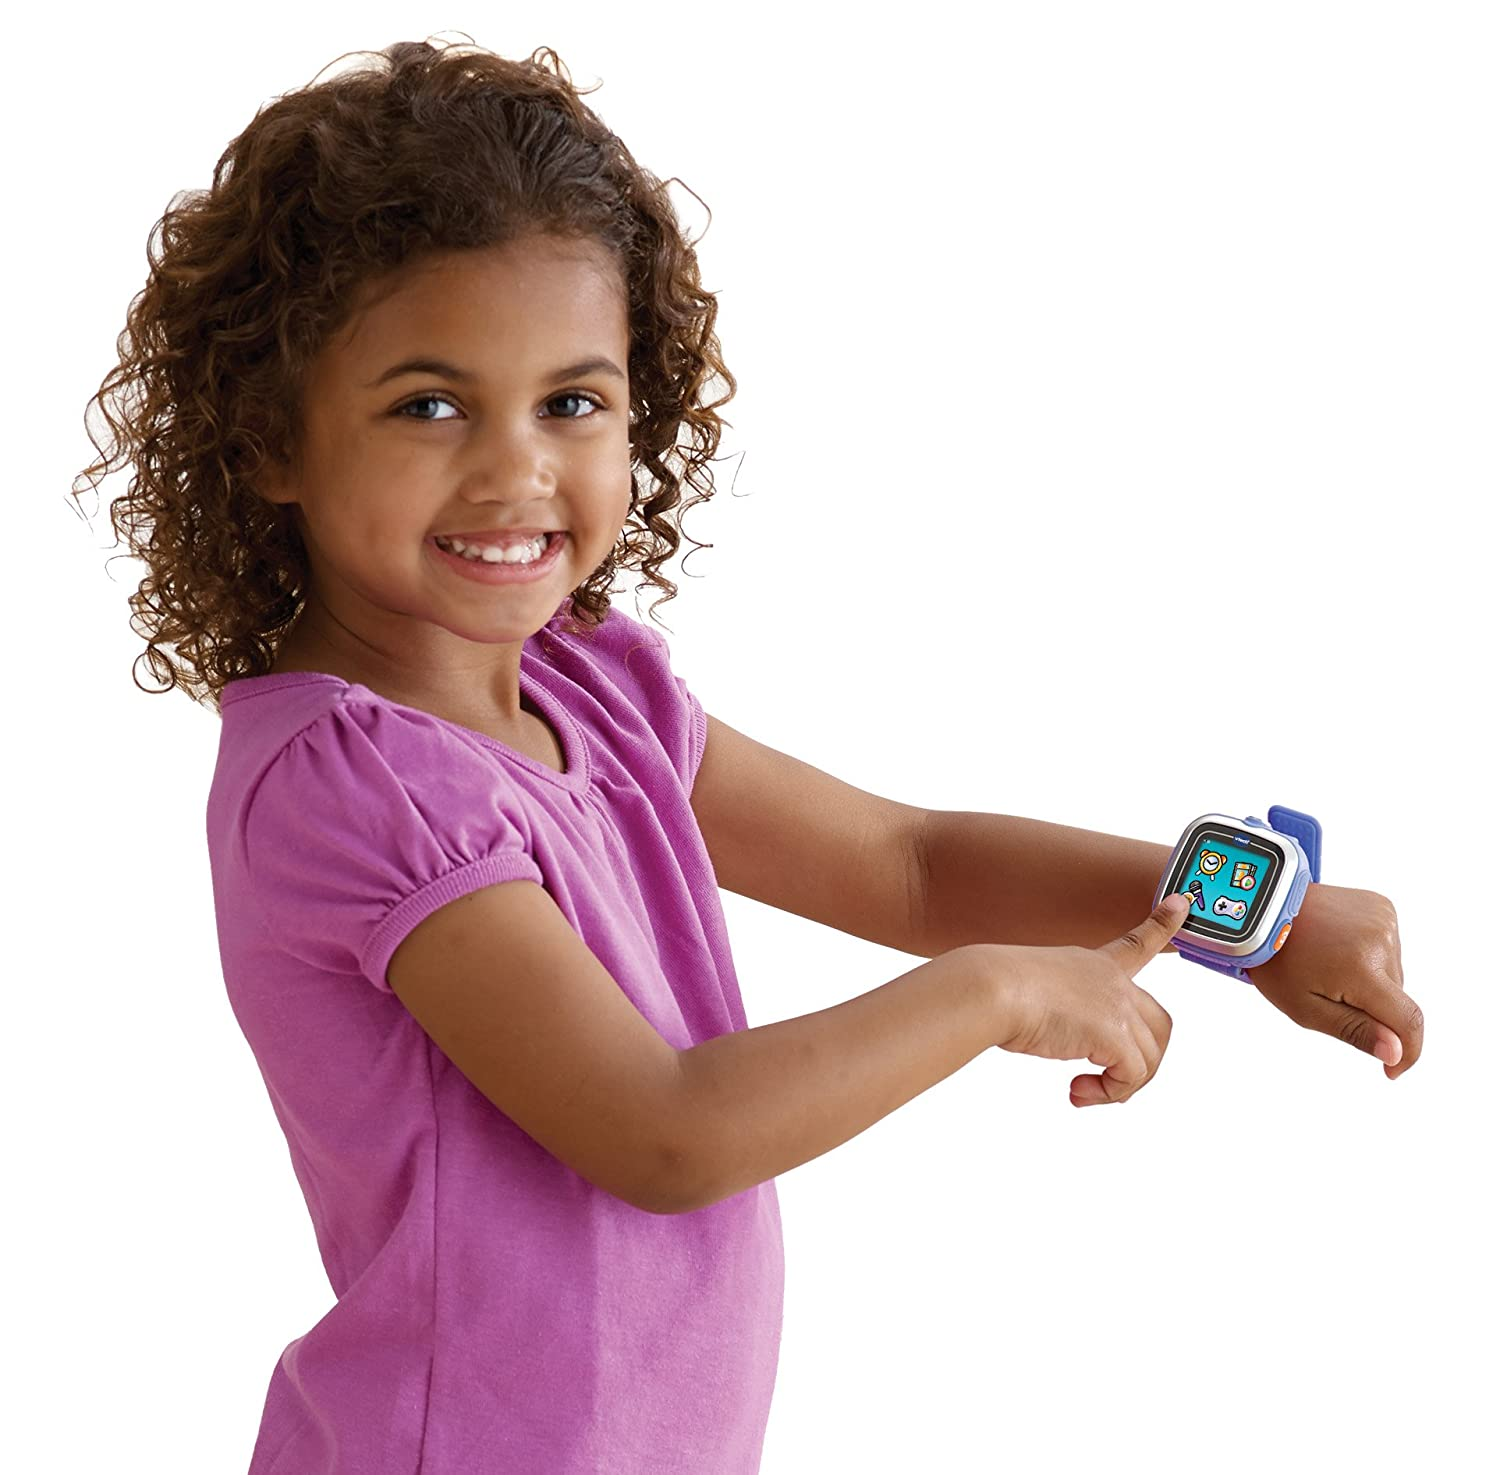 Best Smart Toys For Kids Reviewed : Vtech kidizoom smartwatch review 〓besttoyreviews